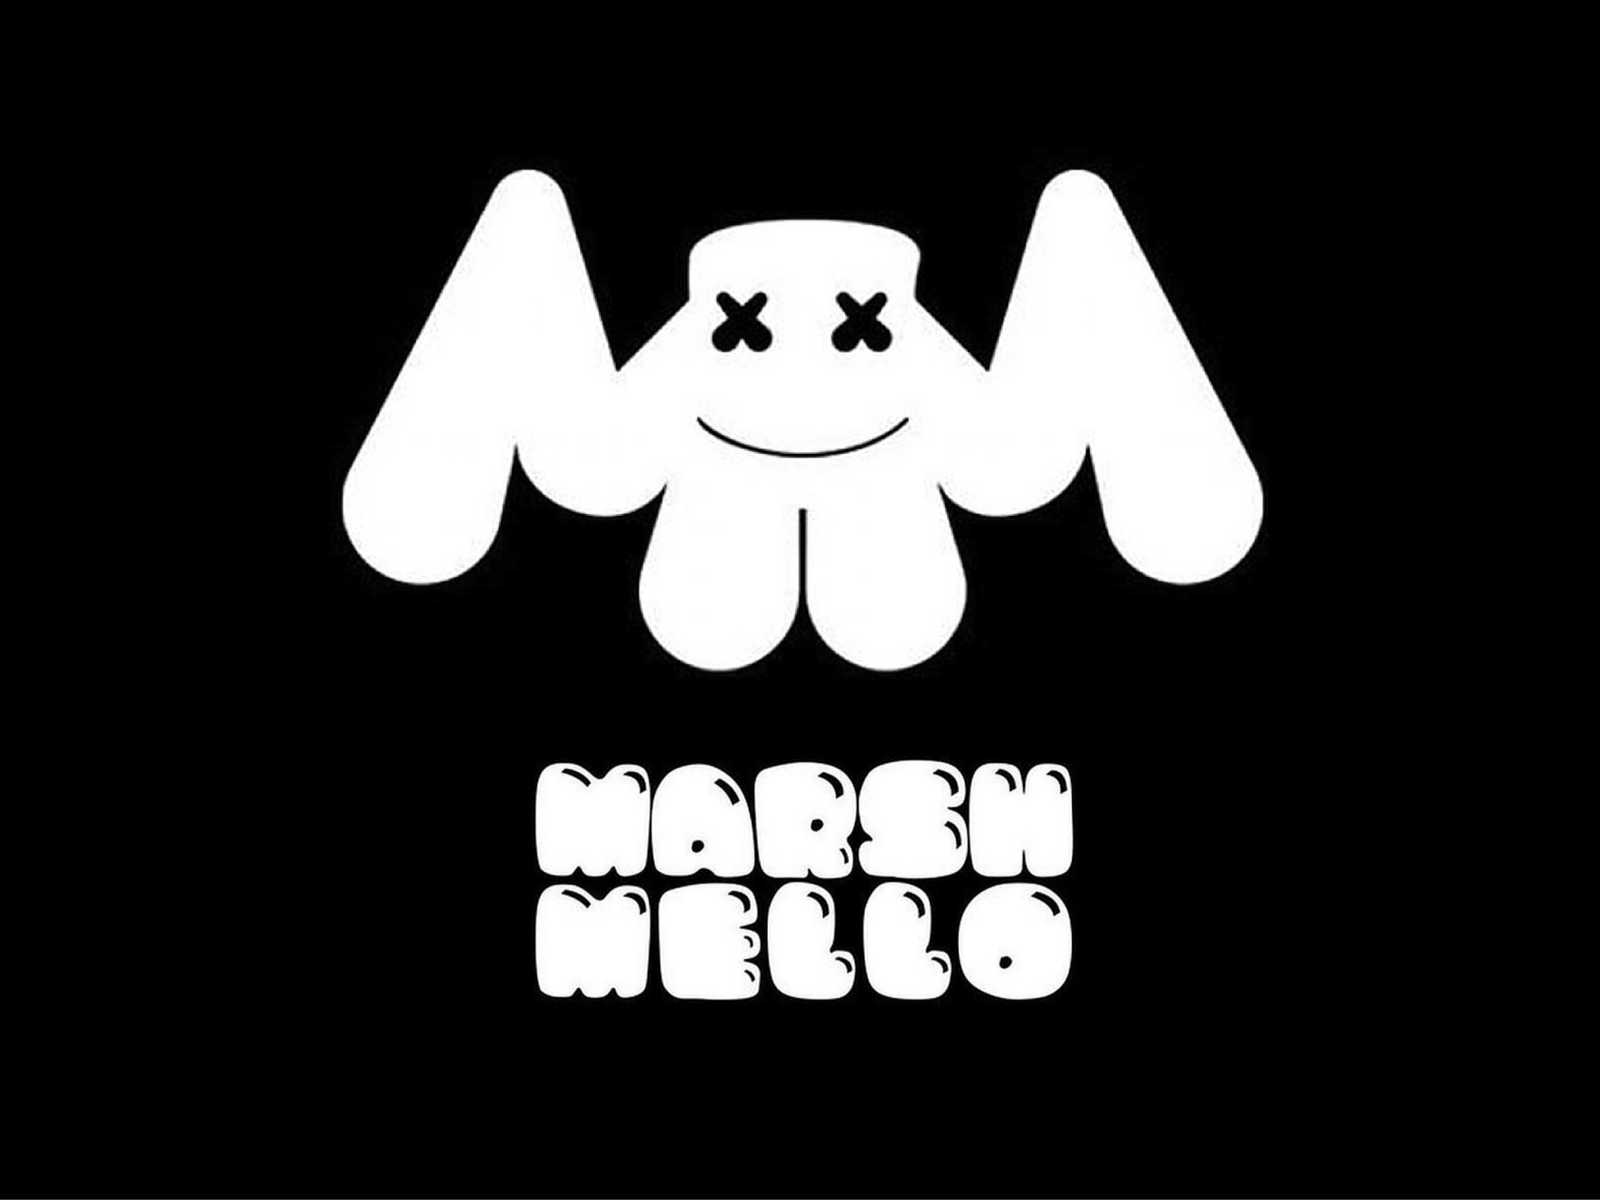 Free Download Marshmello Wallpapers 1600x1200 For Your